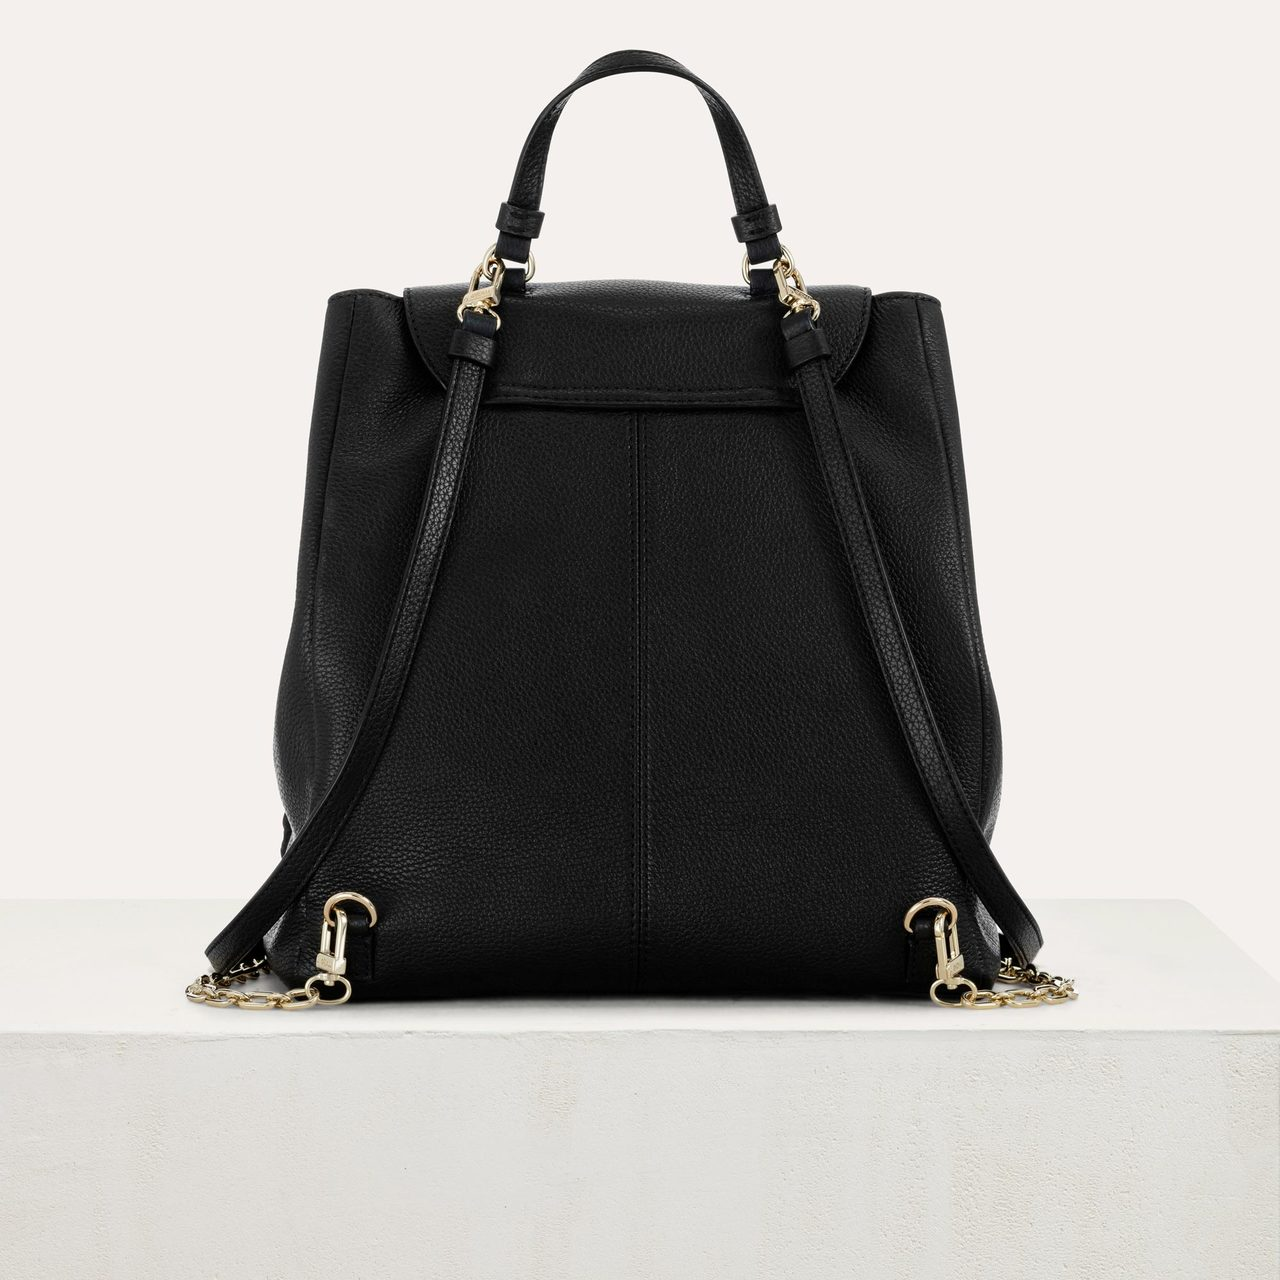 M Backpack In Leather With Chain - Black